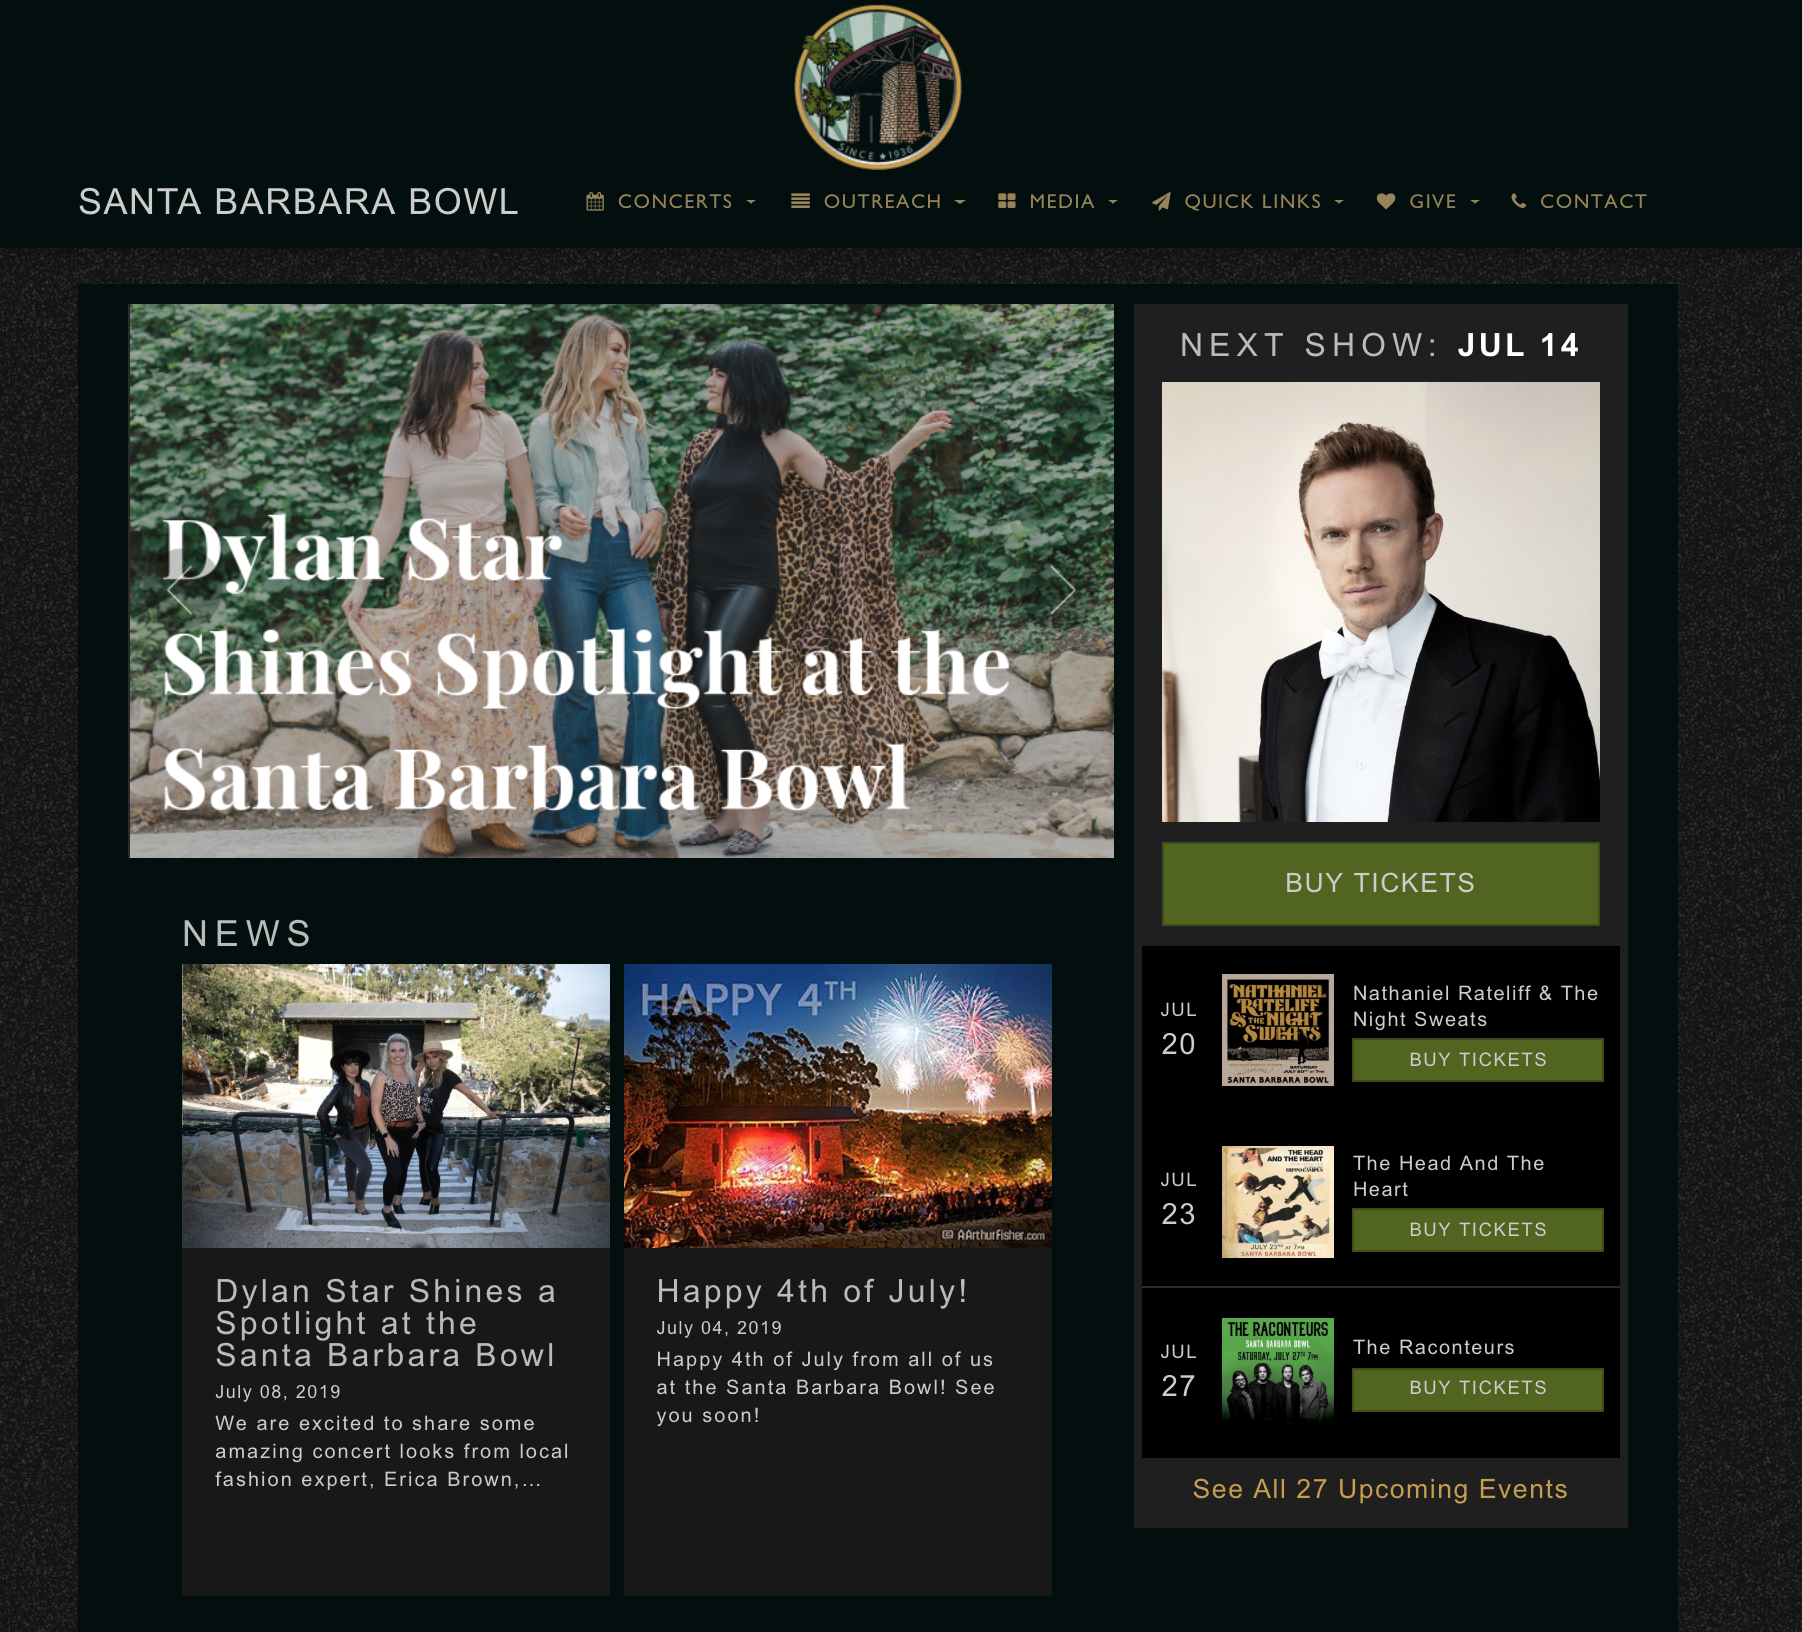 santa-barbara-bowl-dylan-star.jpg